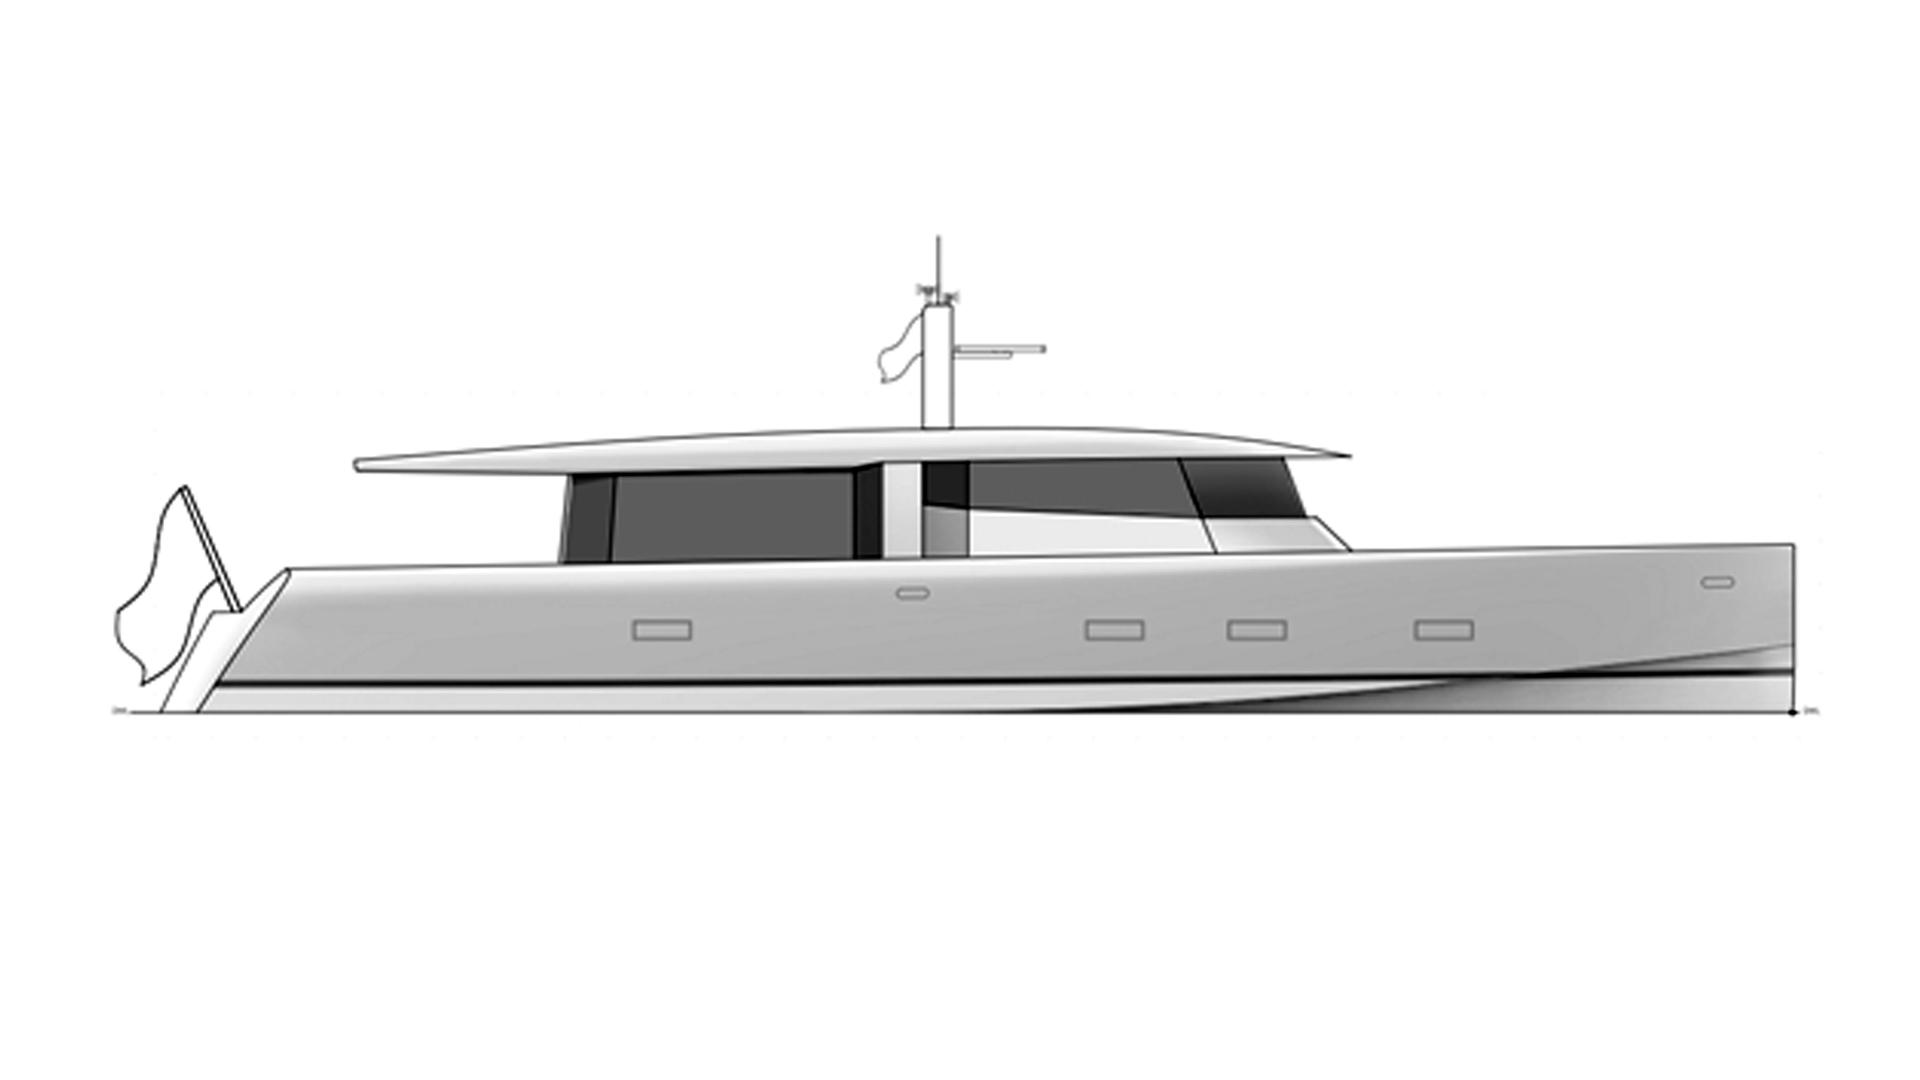 my78-motoryacht-baltic-yachts-2017-24m-profile-rendering